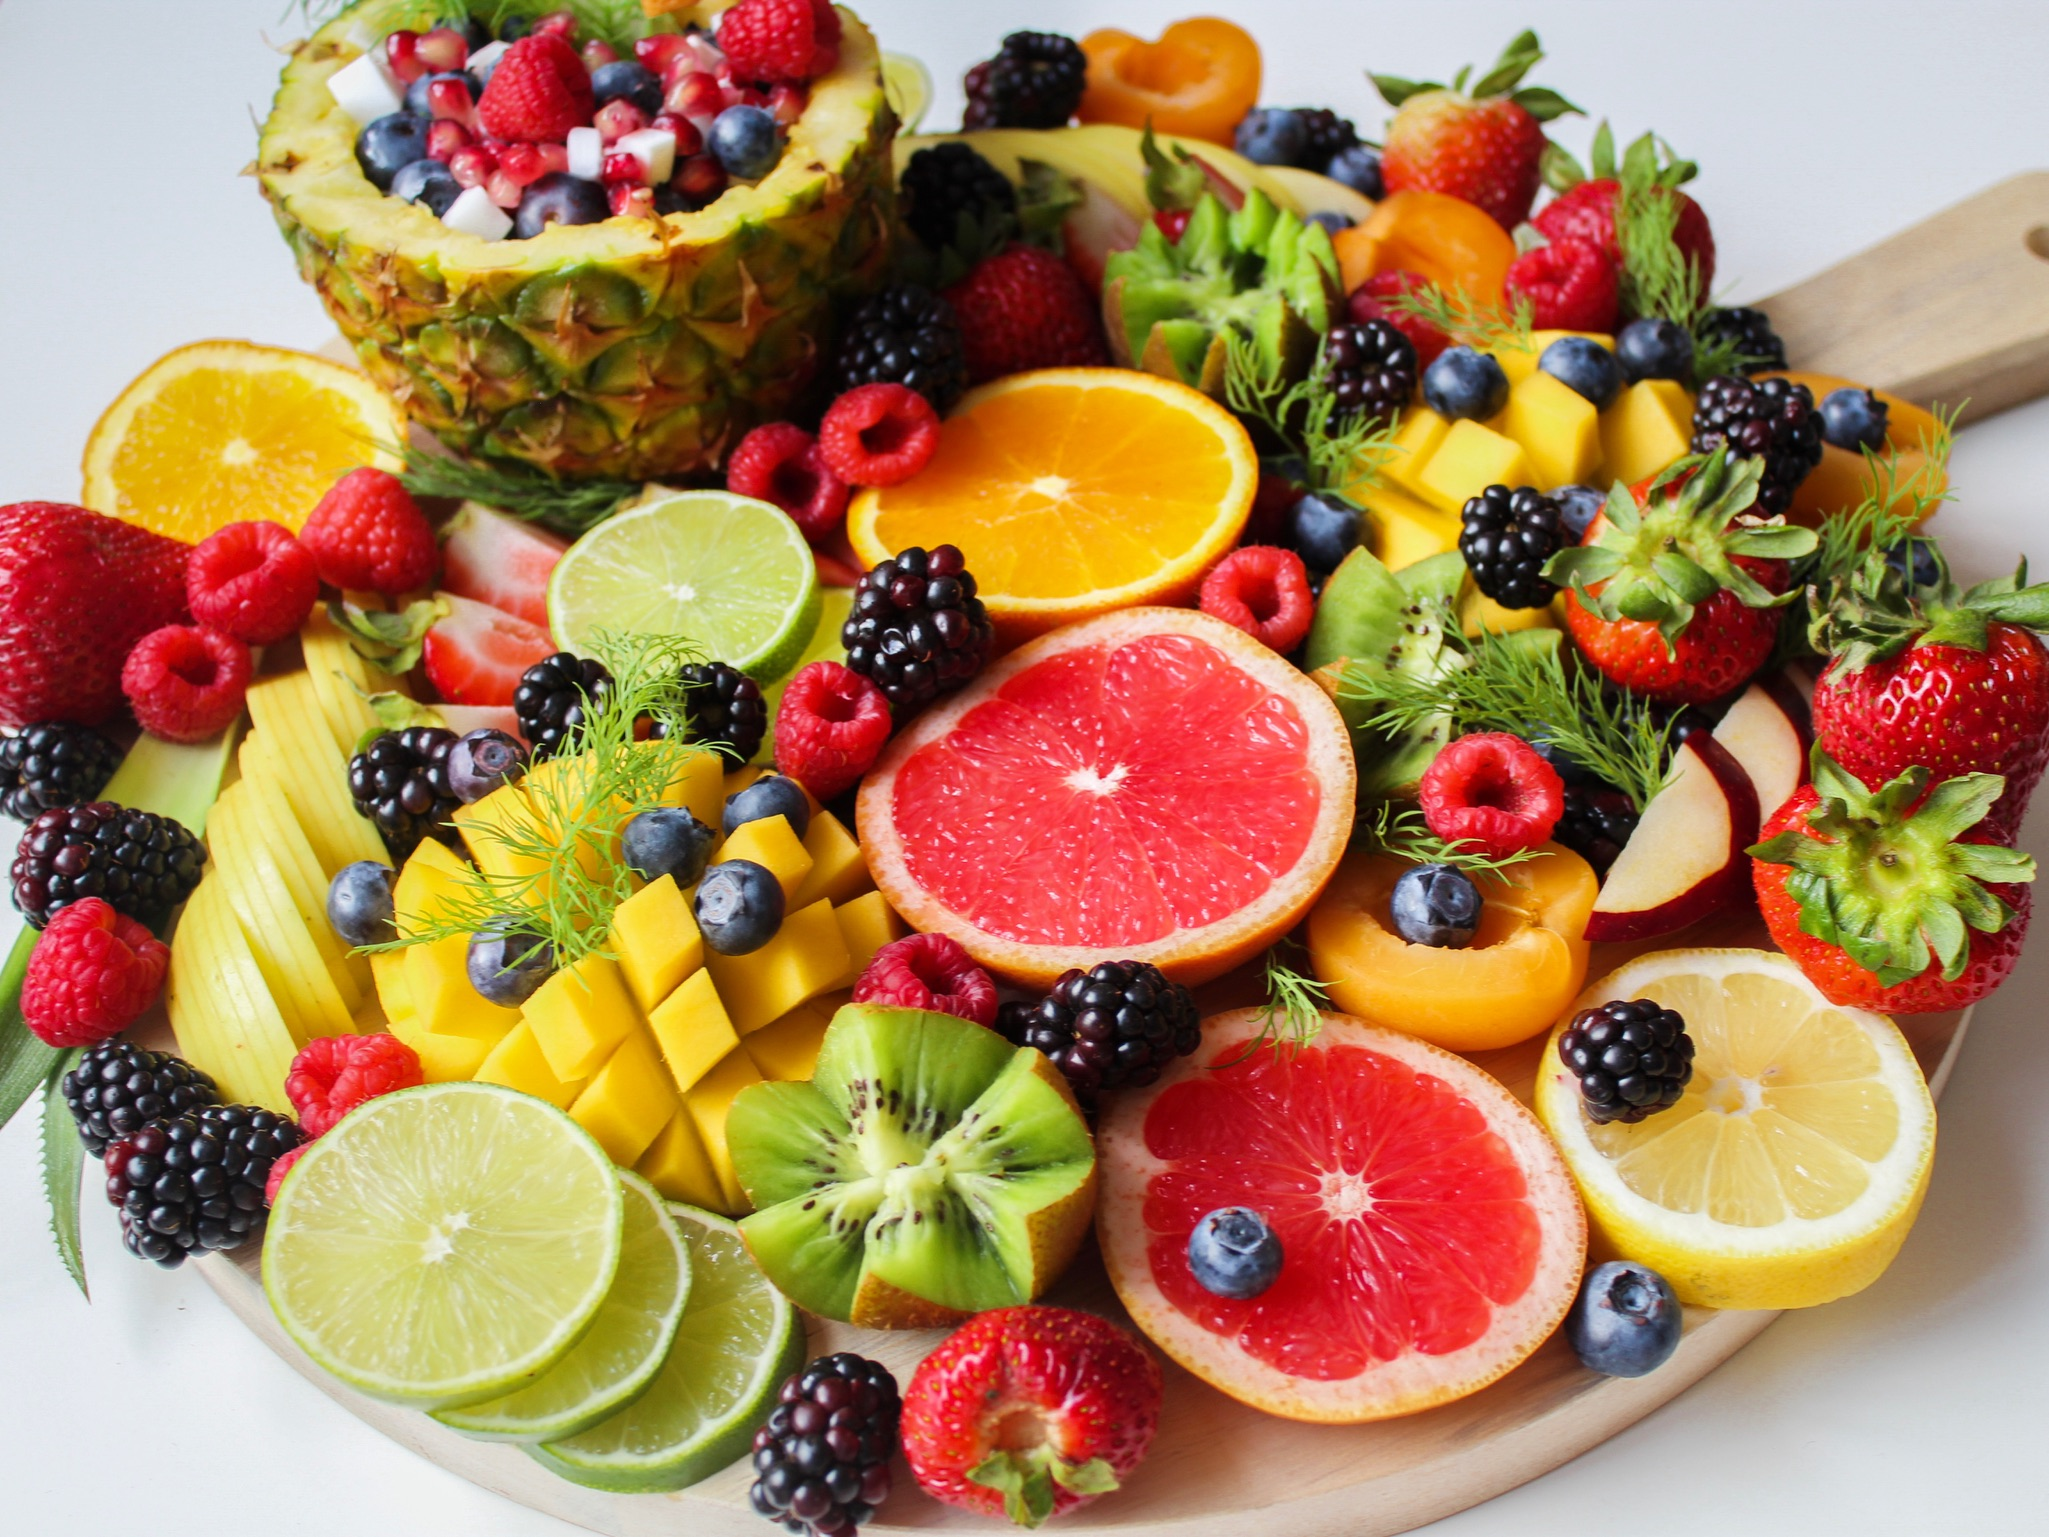 Bunch of fruits lying on the wooden platter